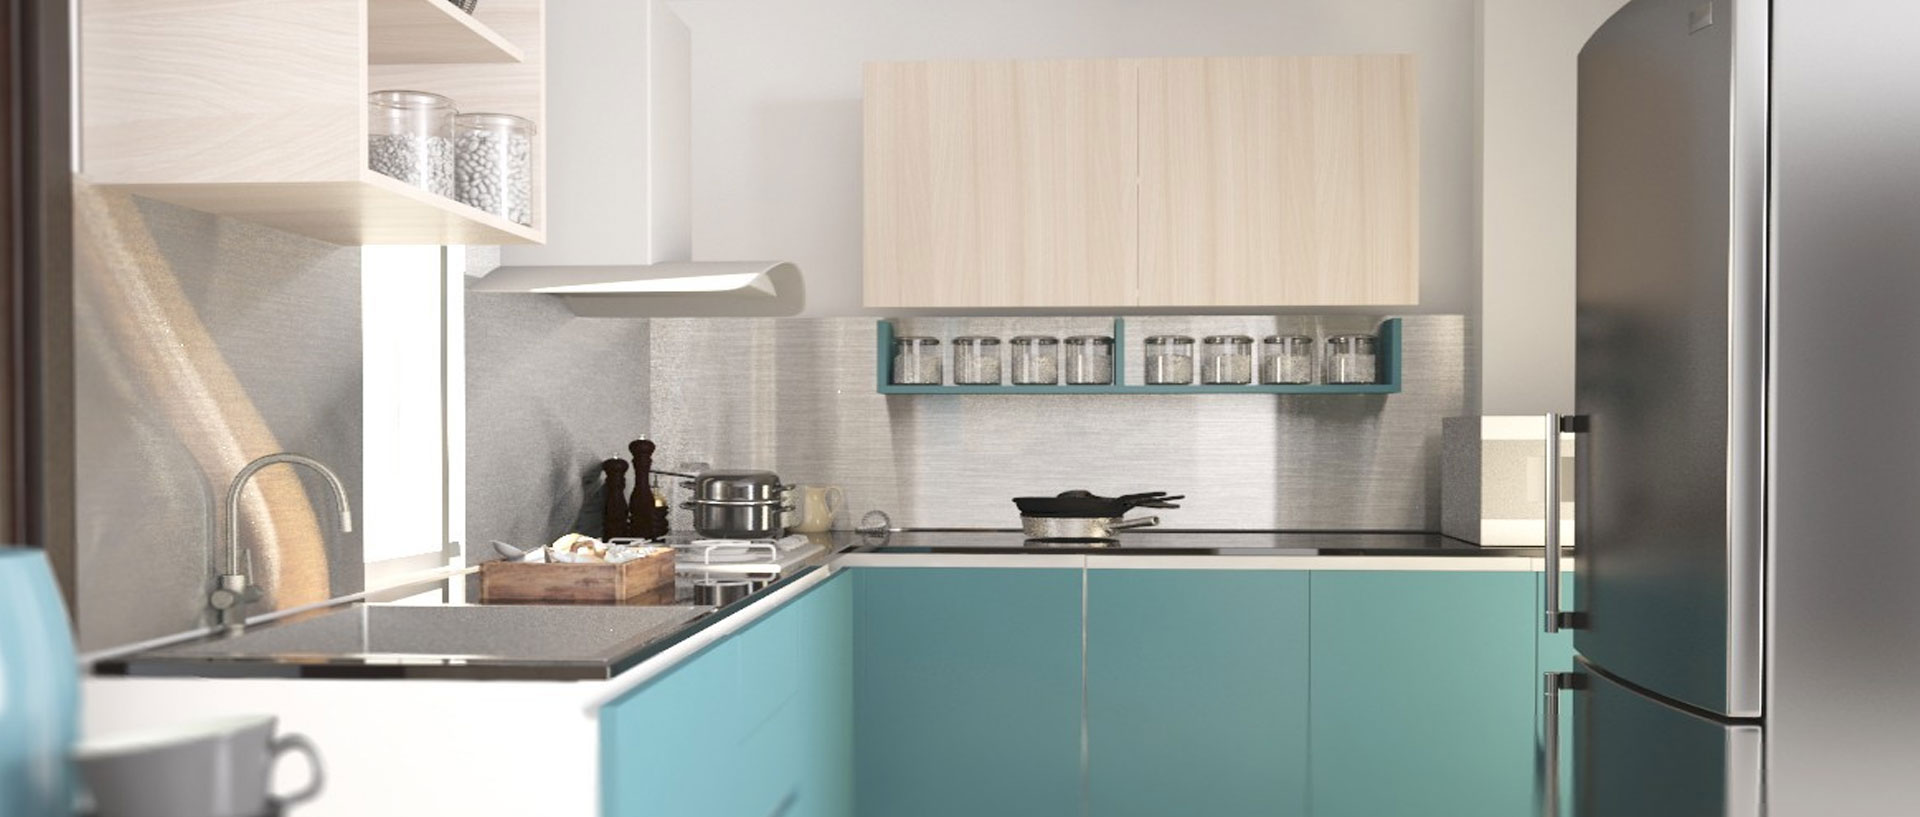 Remodeling an L-Shaped Kitchen | Appliances Connection on